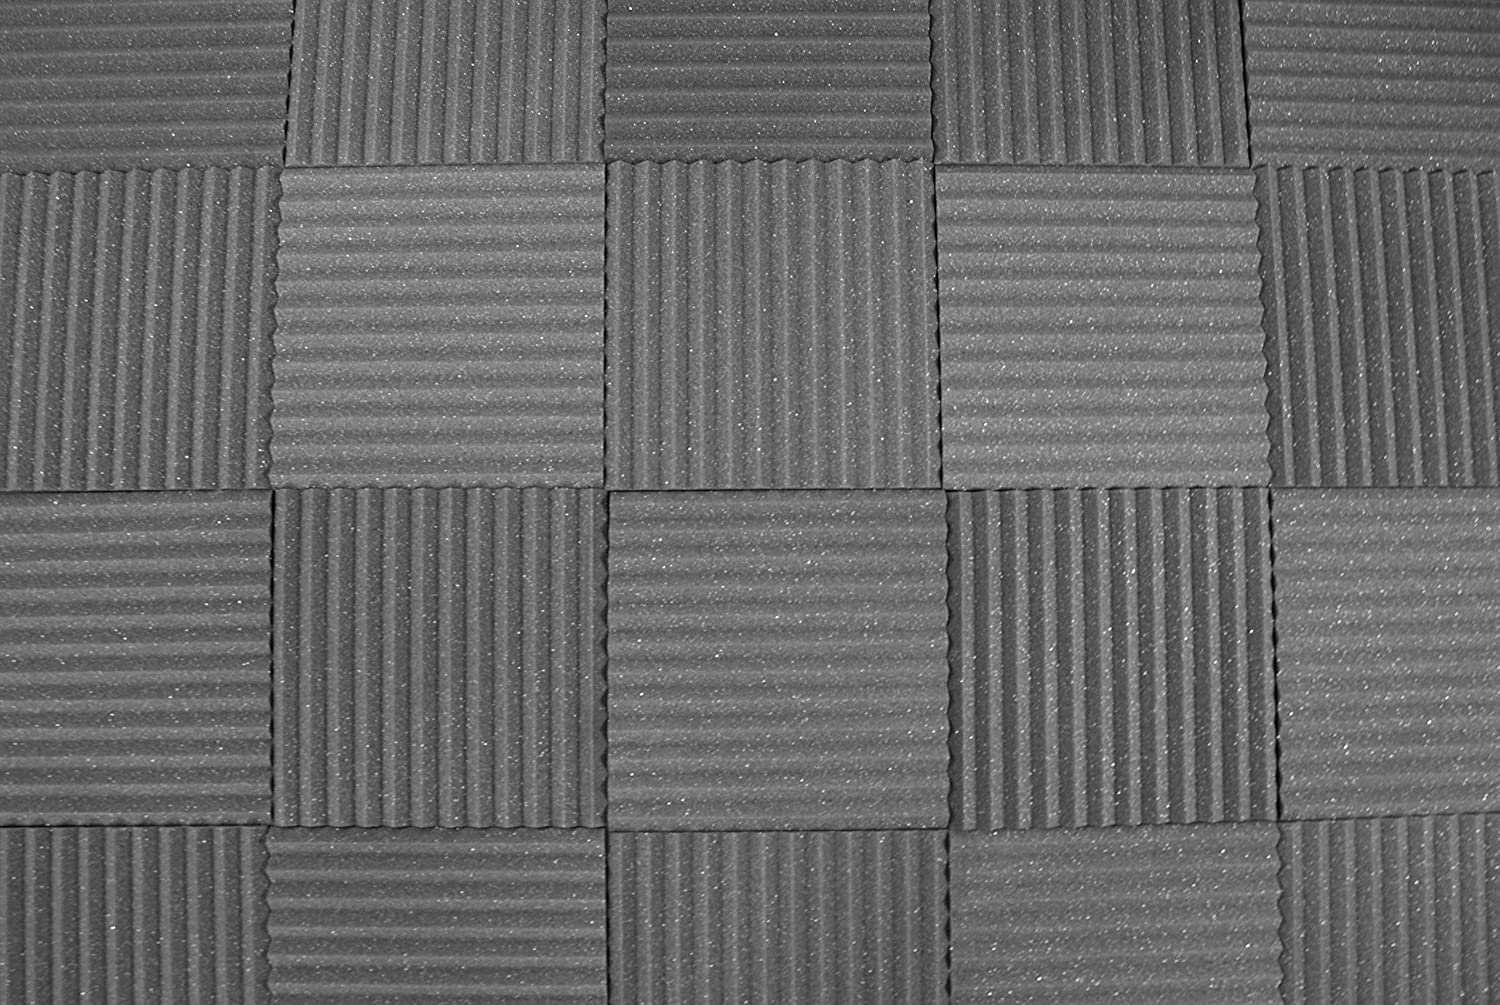 Soundproofing acoustic studio foam wedge style panels 12 x12 x1 tiles Soundproofing for walls interior